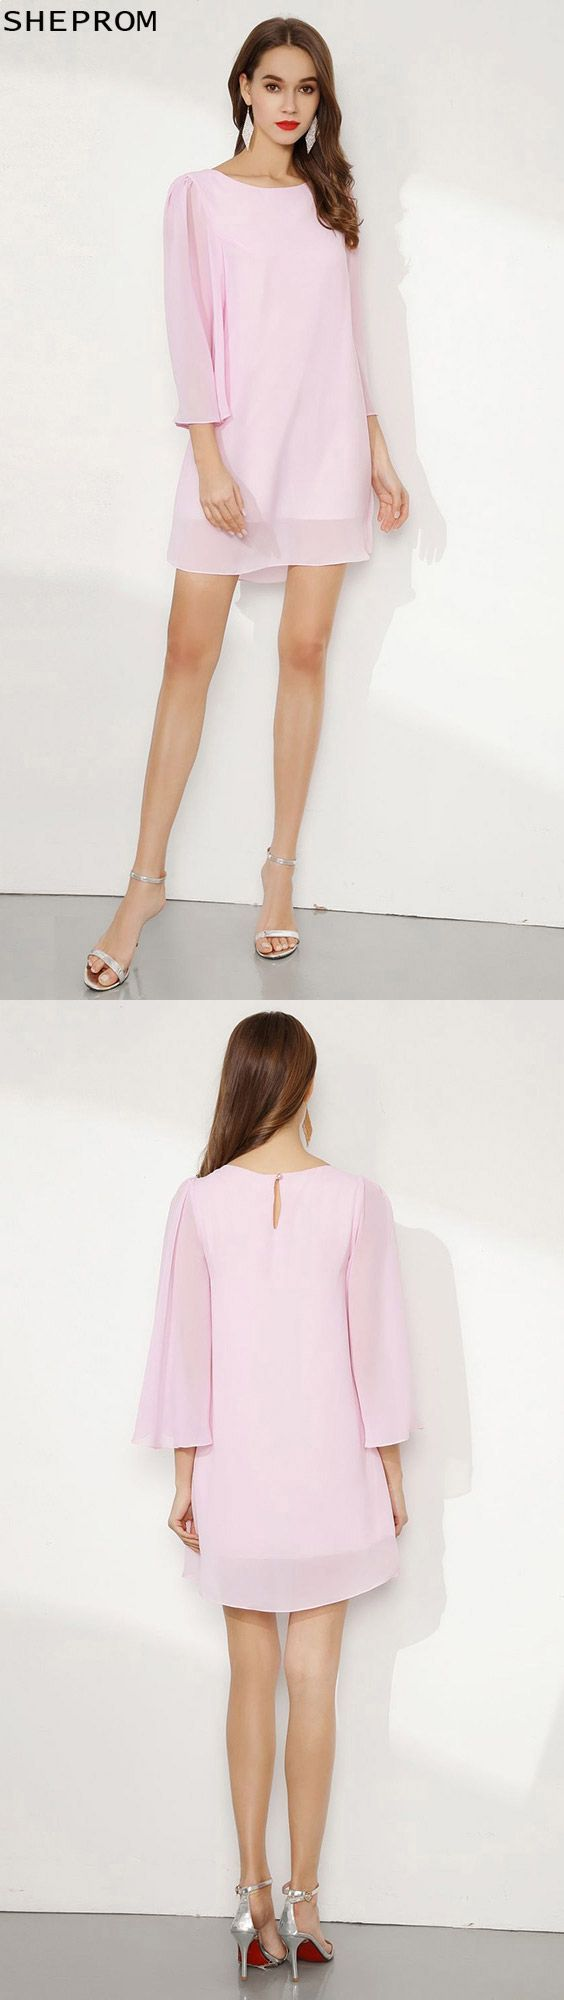 Simple chiffon blushing pink short prom dress with dolman sleeves